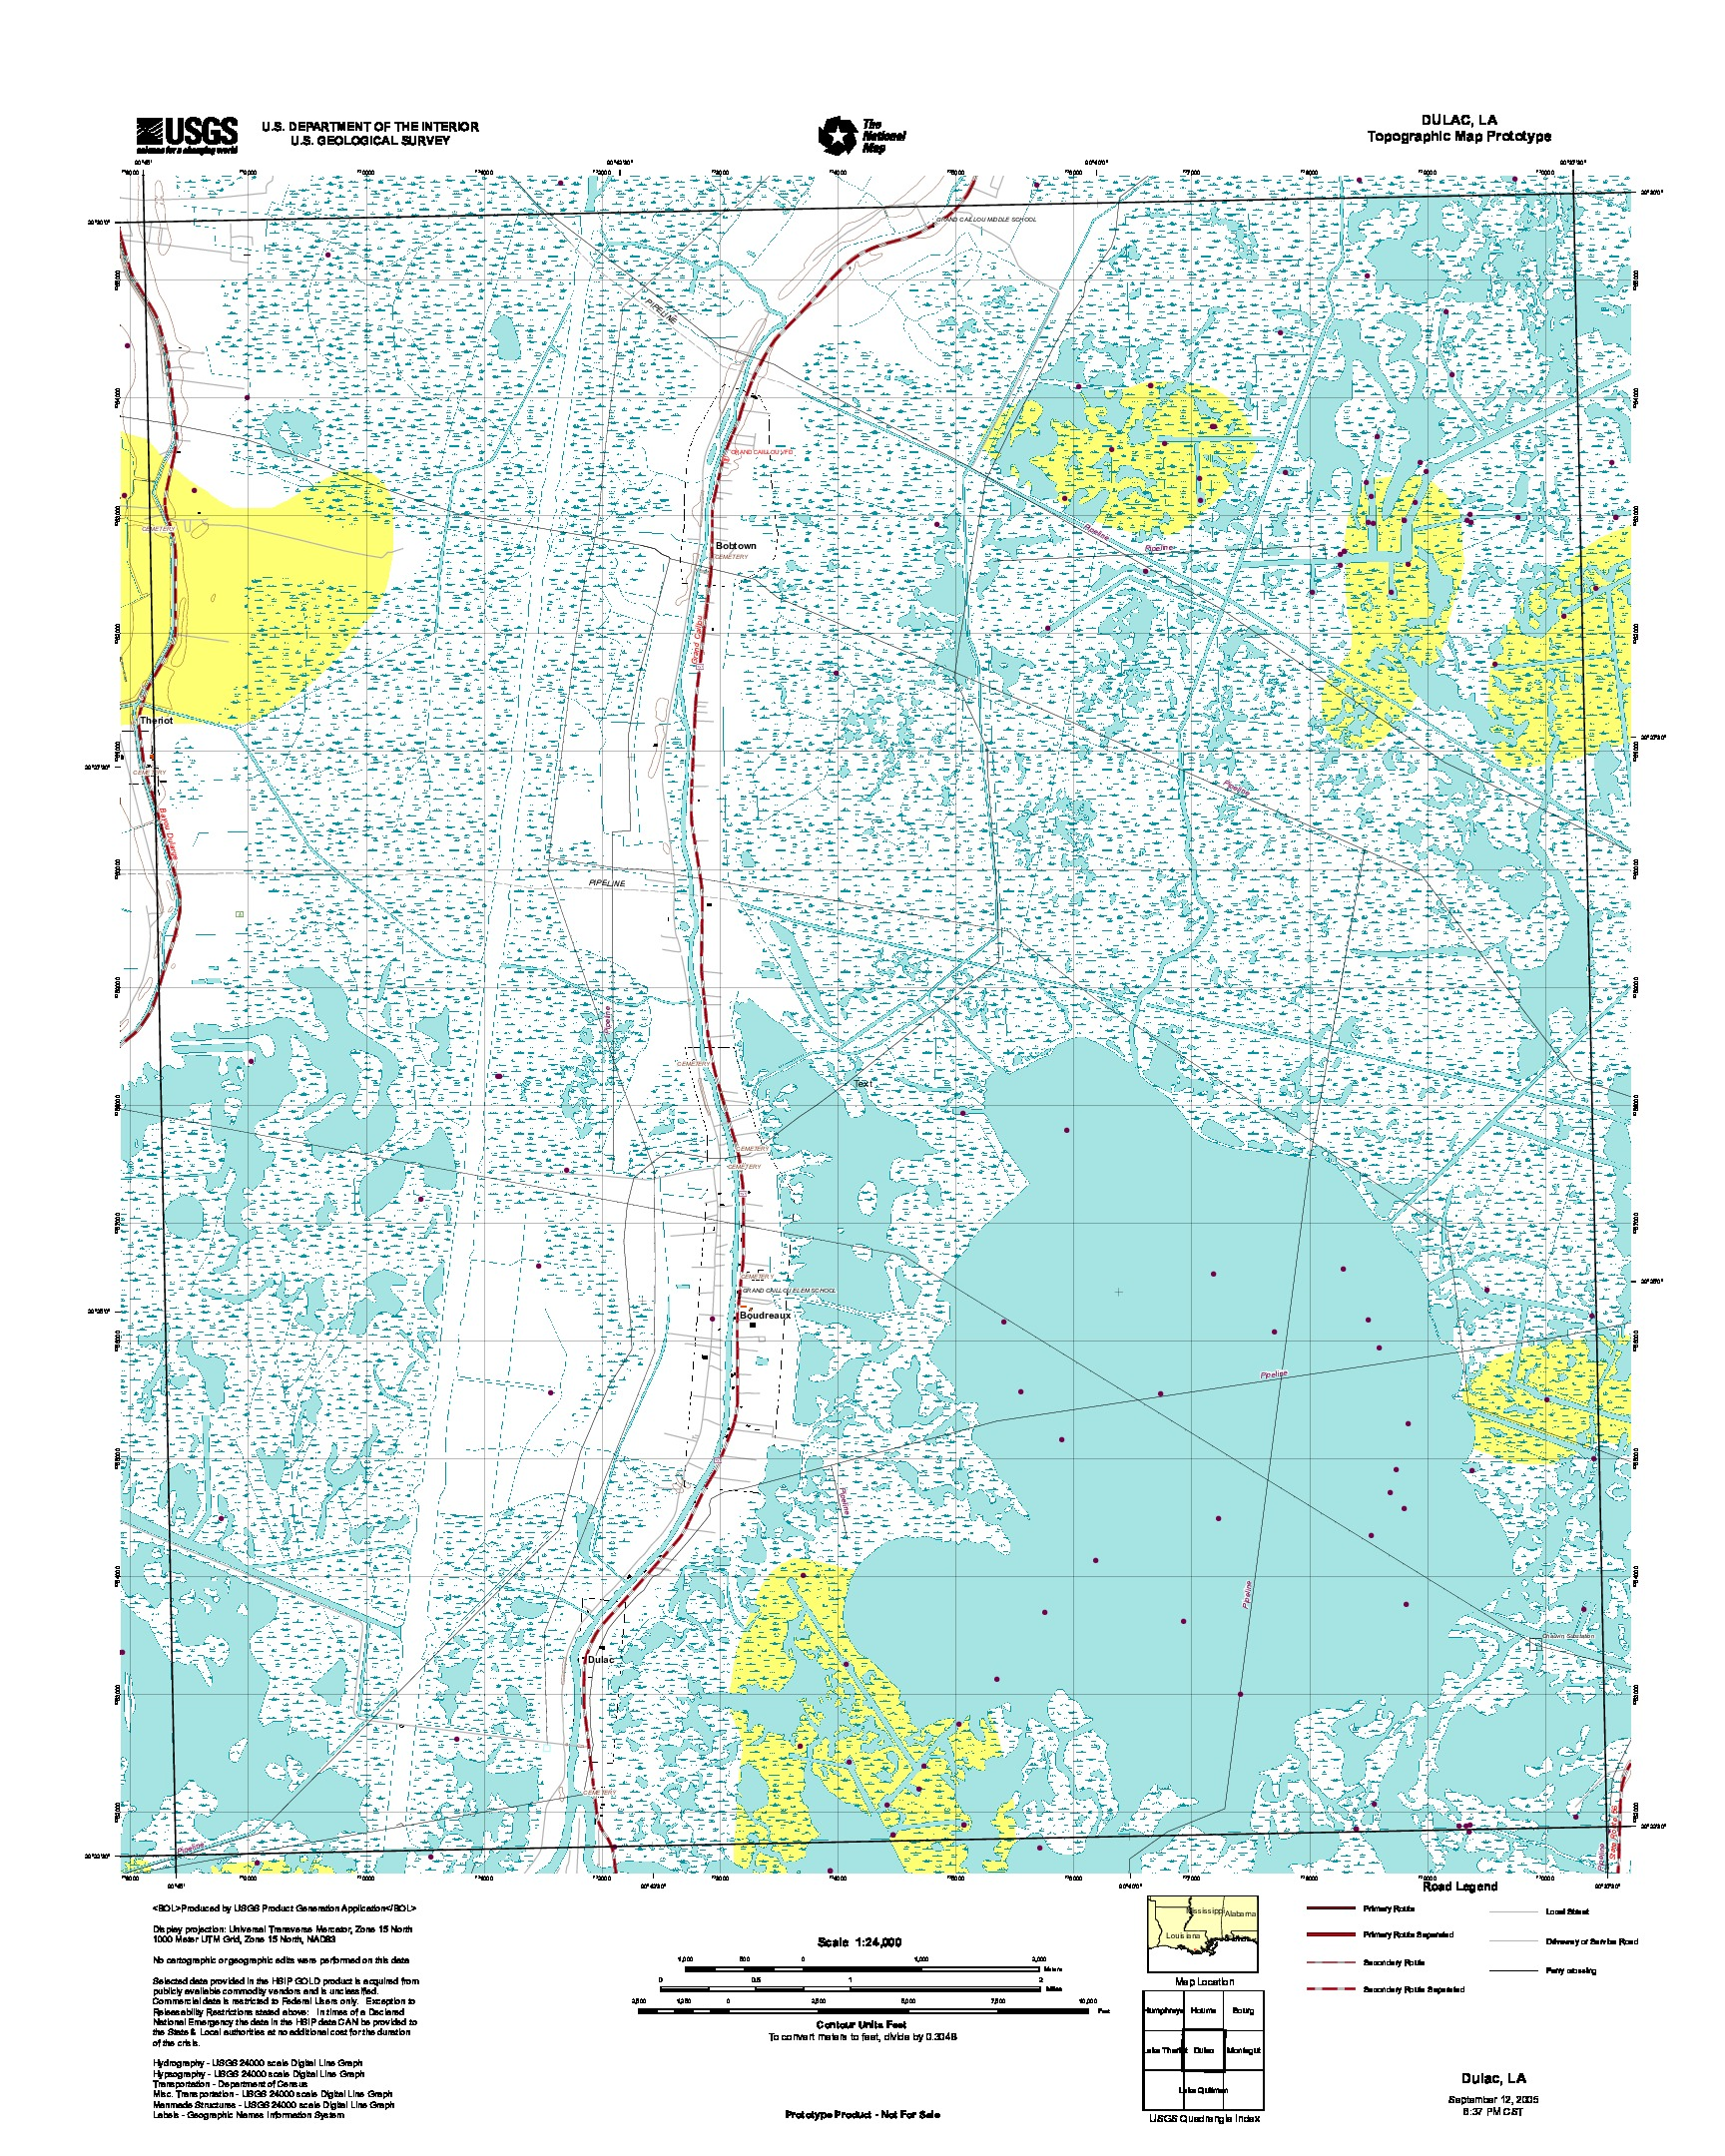 Dulac, Topographic Map Prototype, Louisiana, United States, September 12, 2005